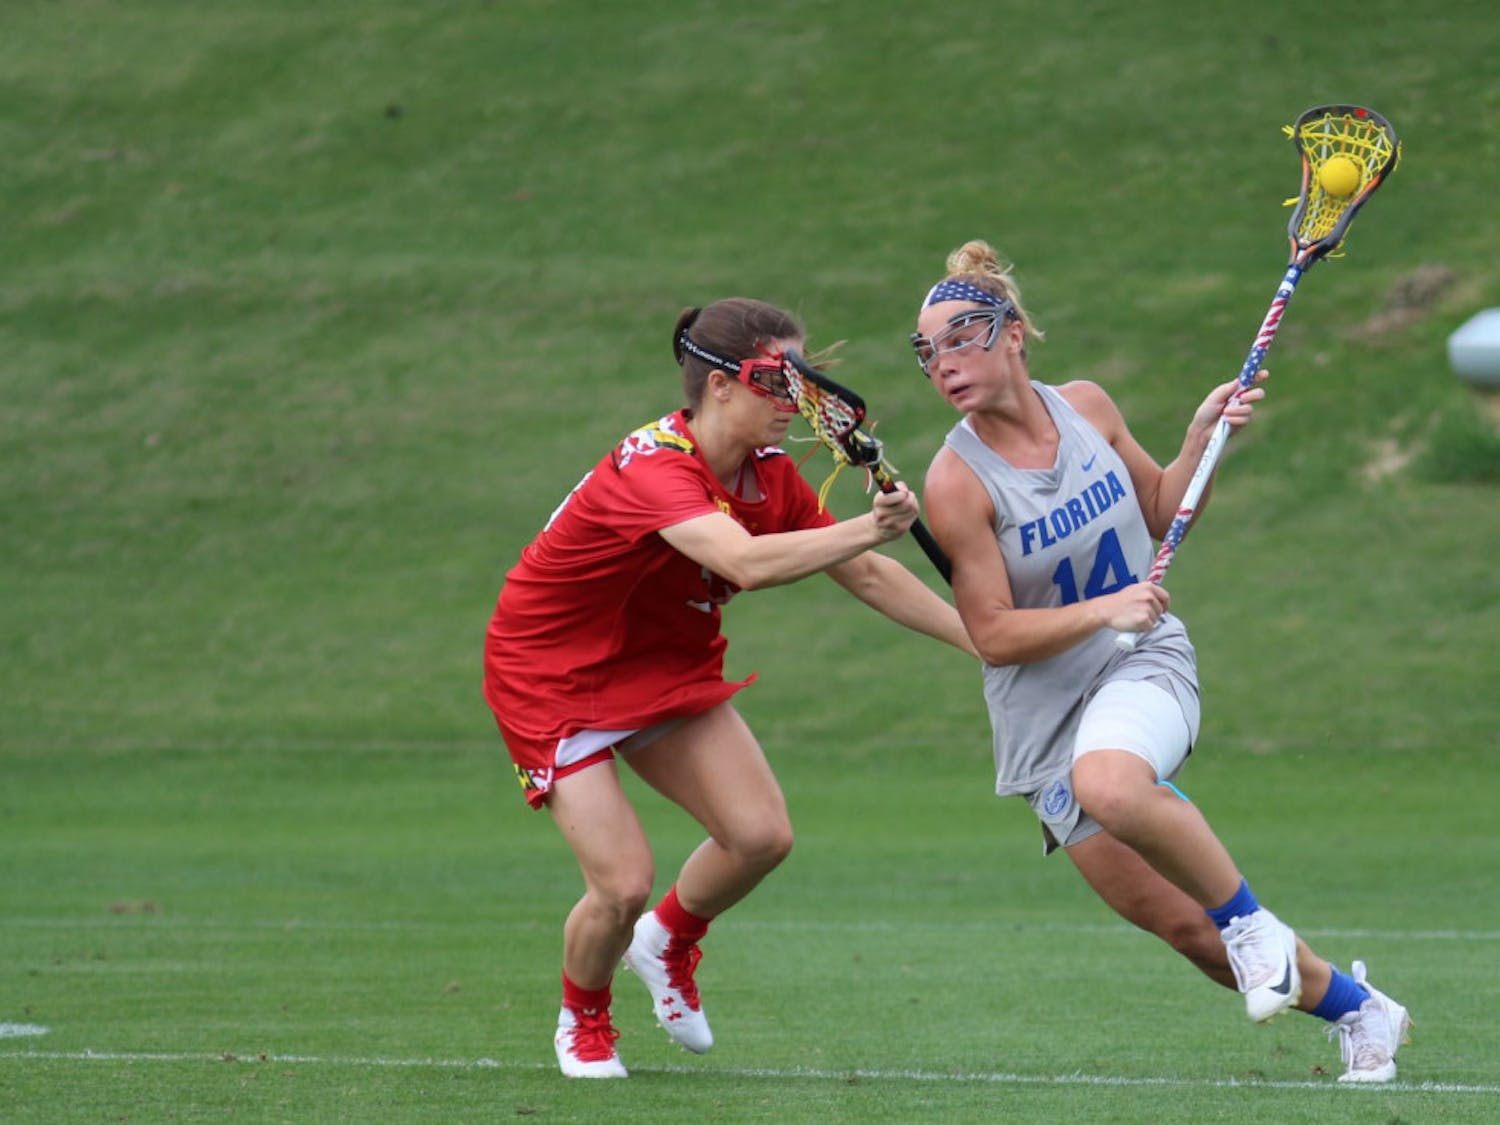 Senior attacker Lindsey Ronbeck scored the game-tying goal with 44 seconds left before Syracuse attackerMeaghan Tyrrell converted a free-position attempt with eight seconds to go. Florida lost 14-13 on Wednesday.